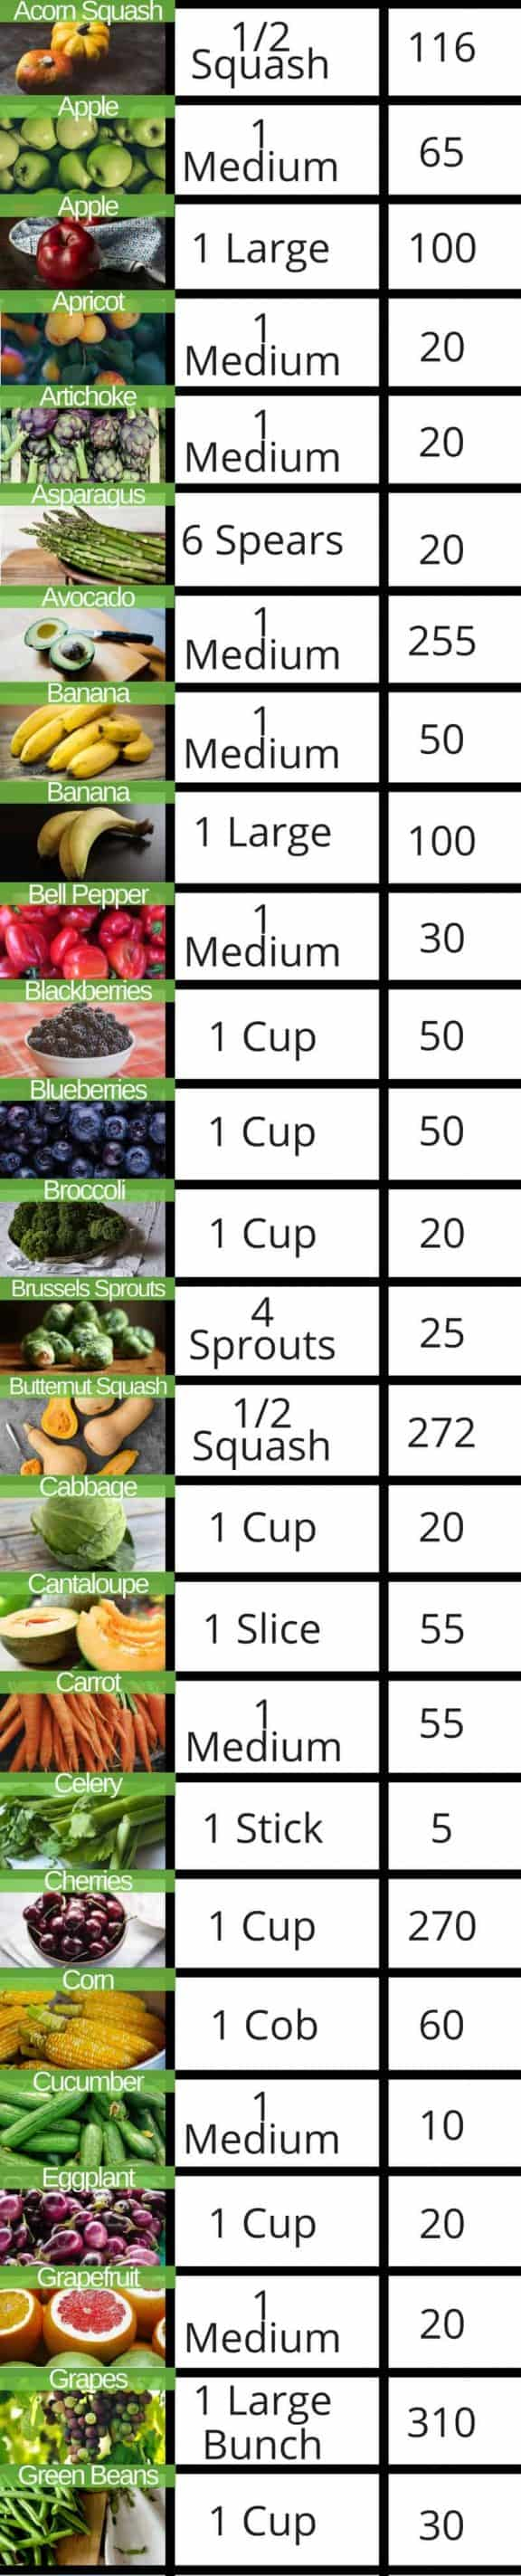 How Much Should You Pay for a Juicer